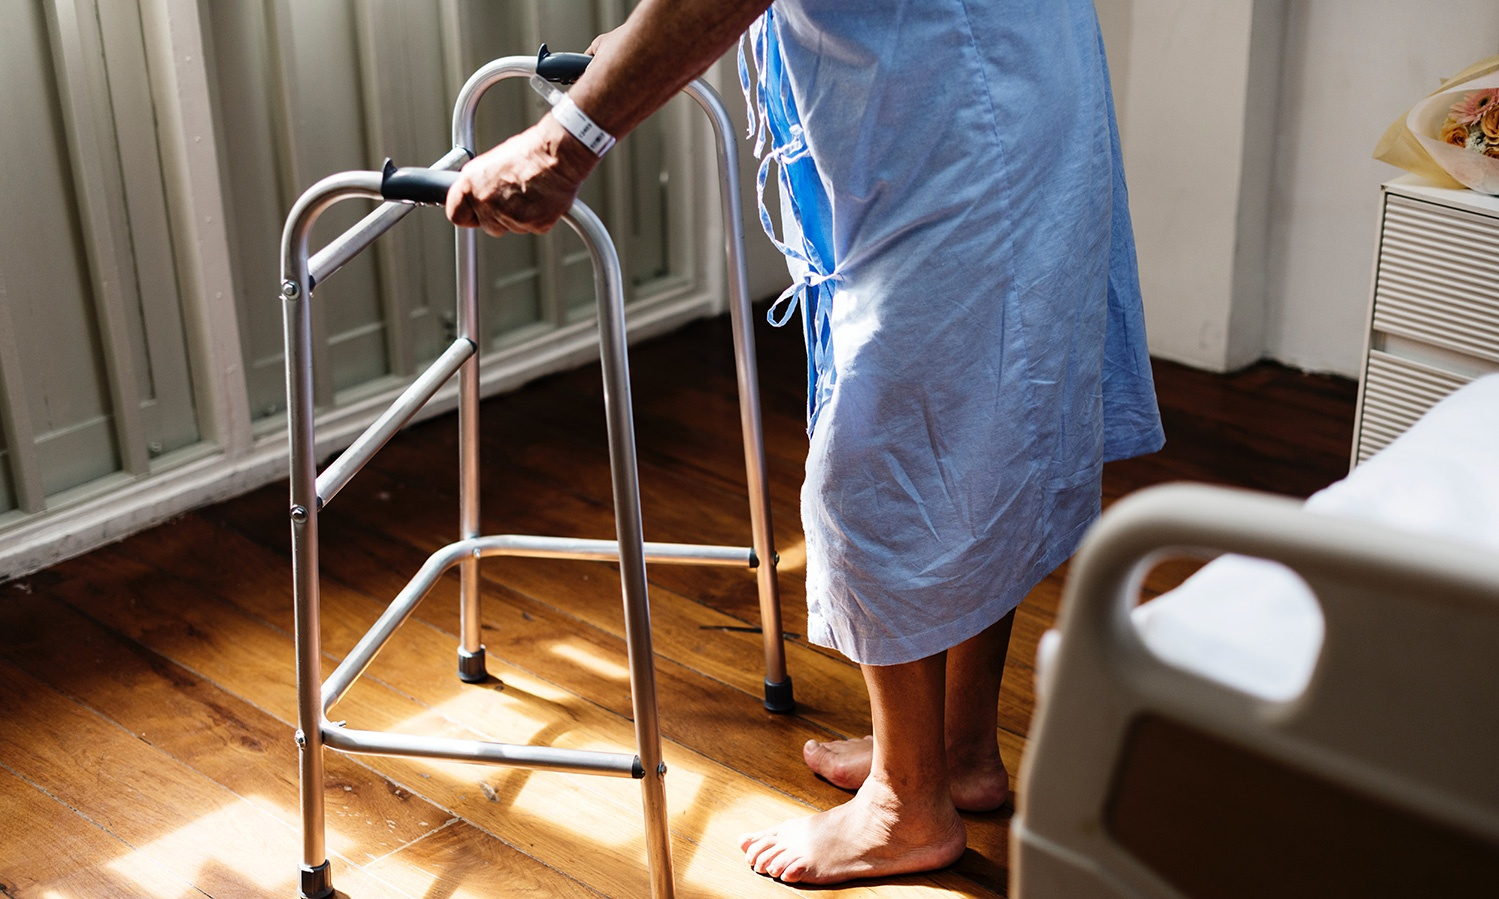 How Australia's ageing population is changing our healthcare system